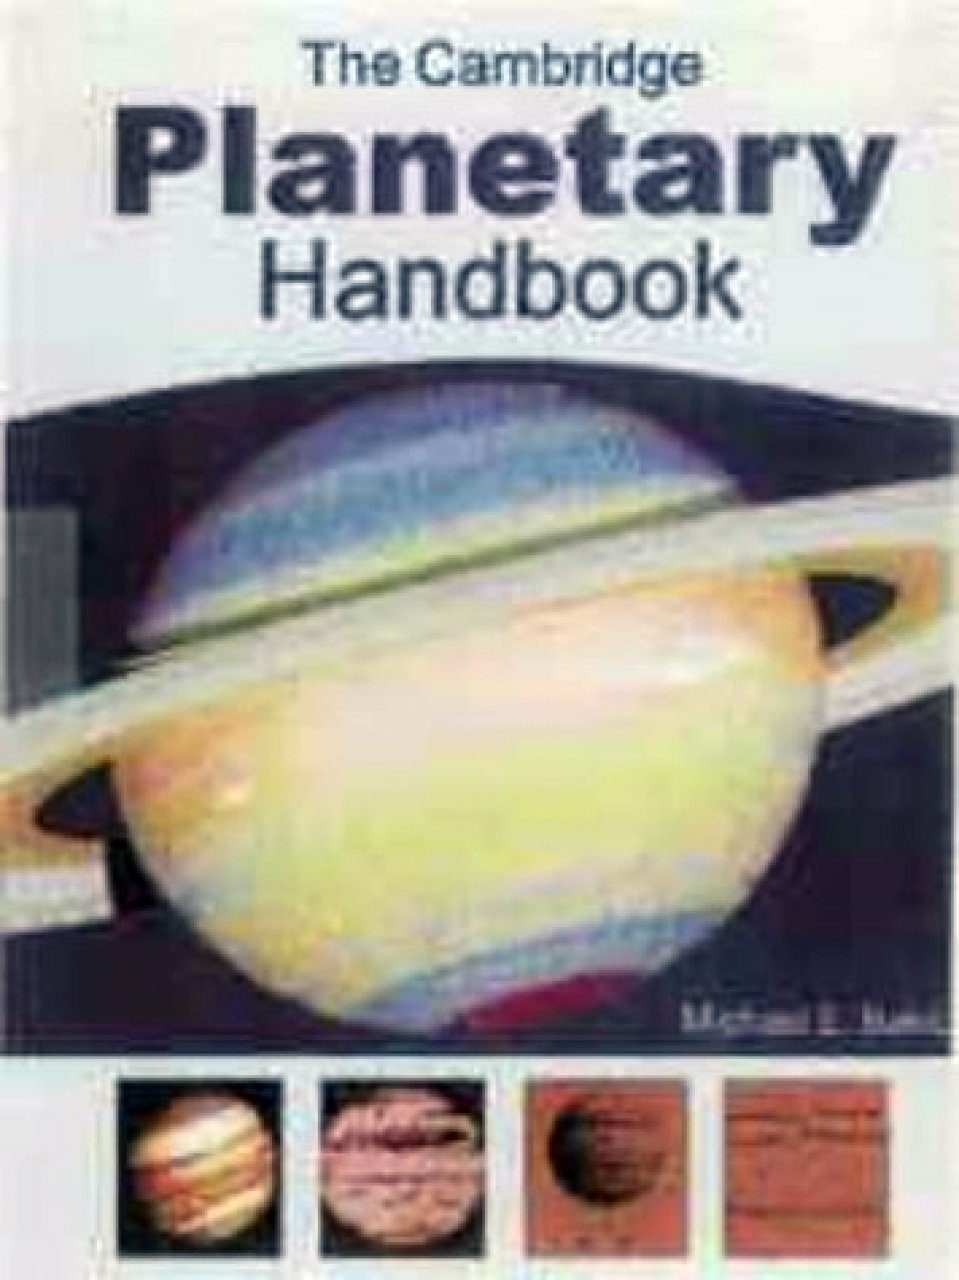 The Cambridge Planetary Handbook